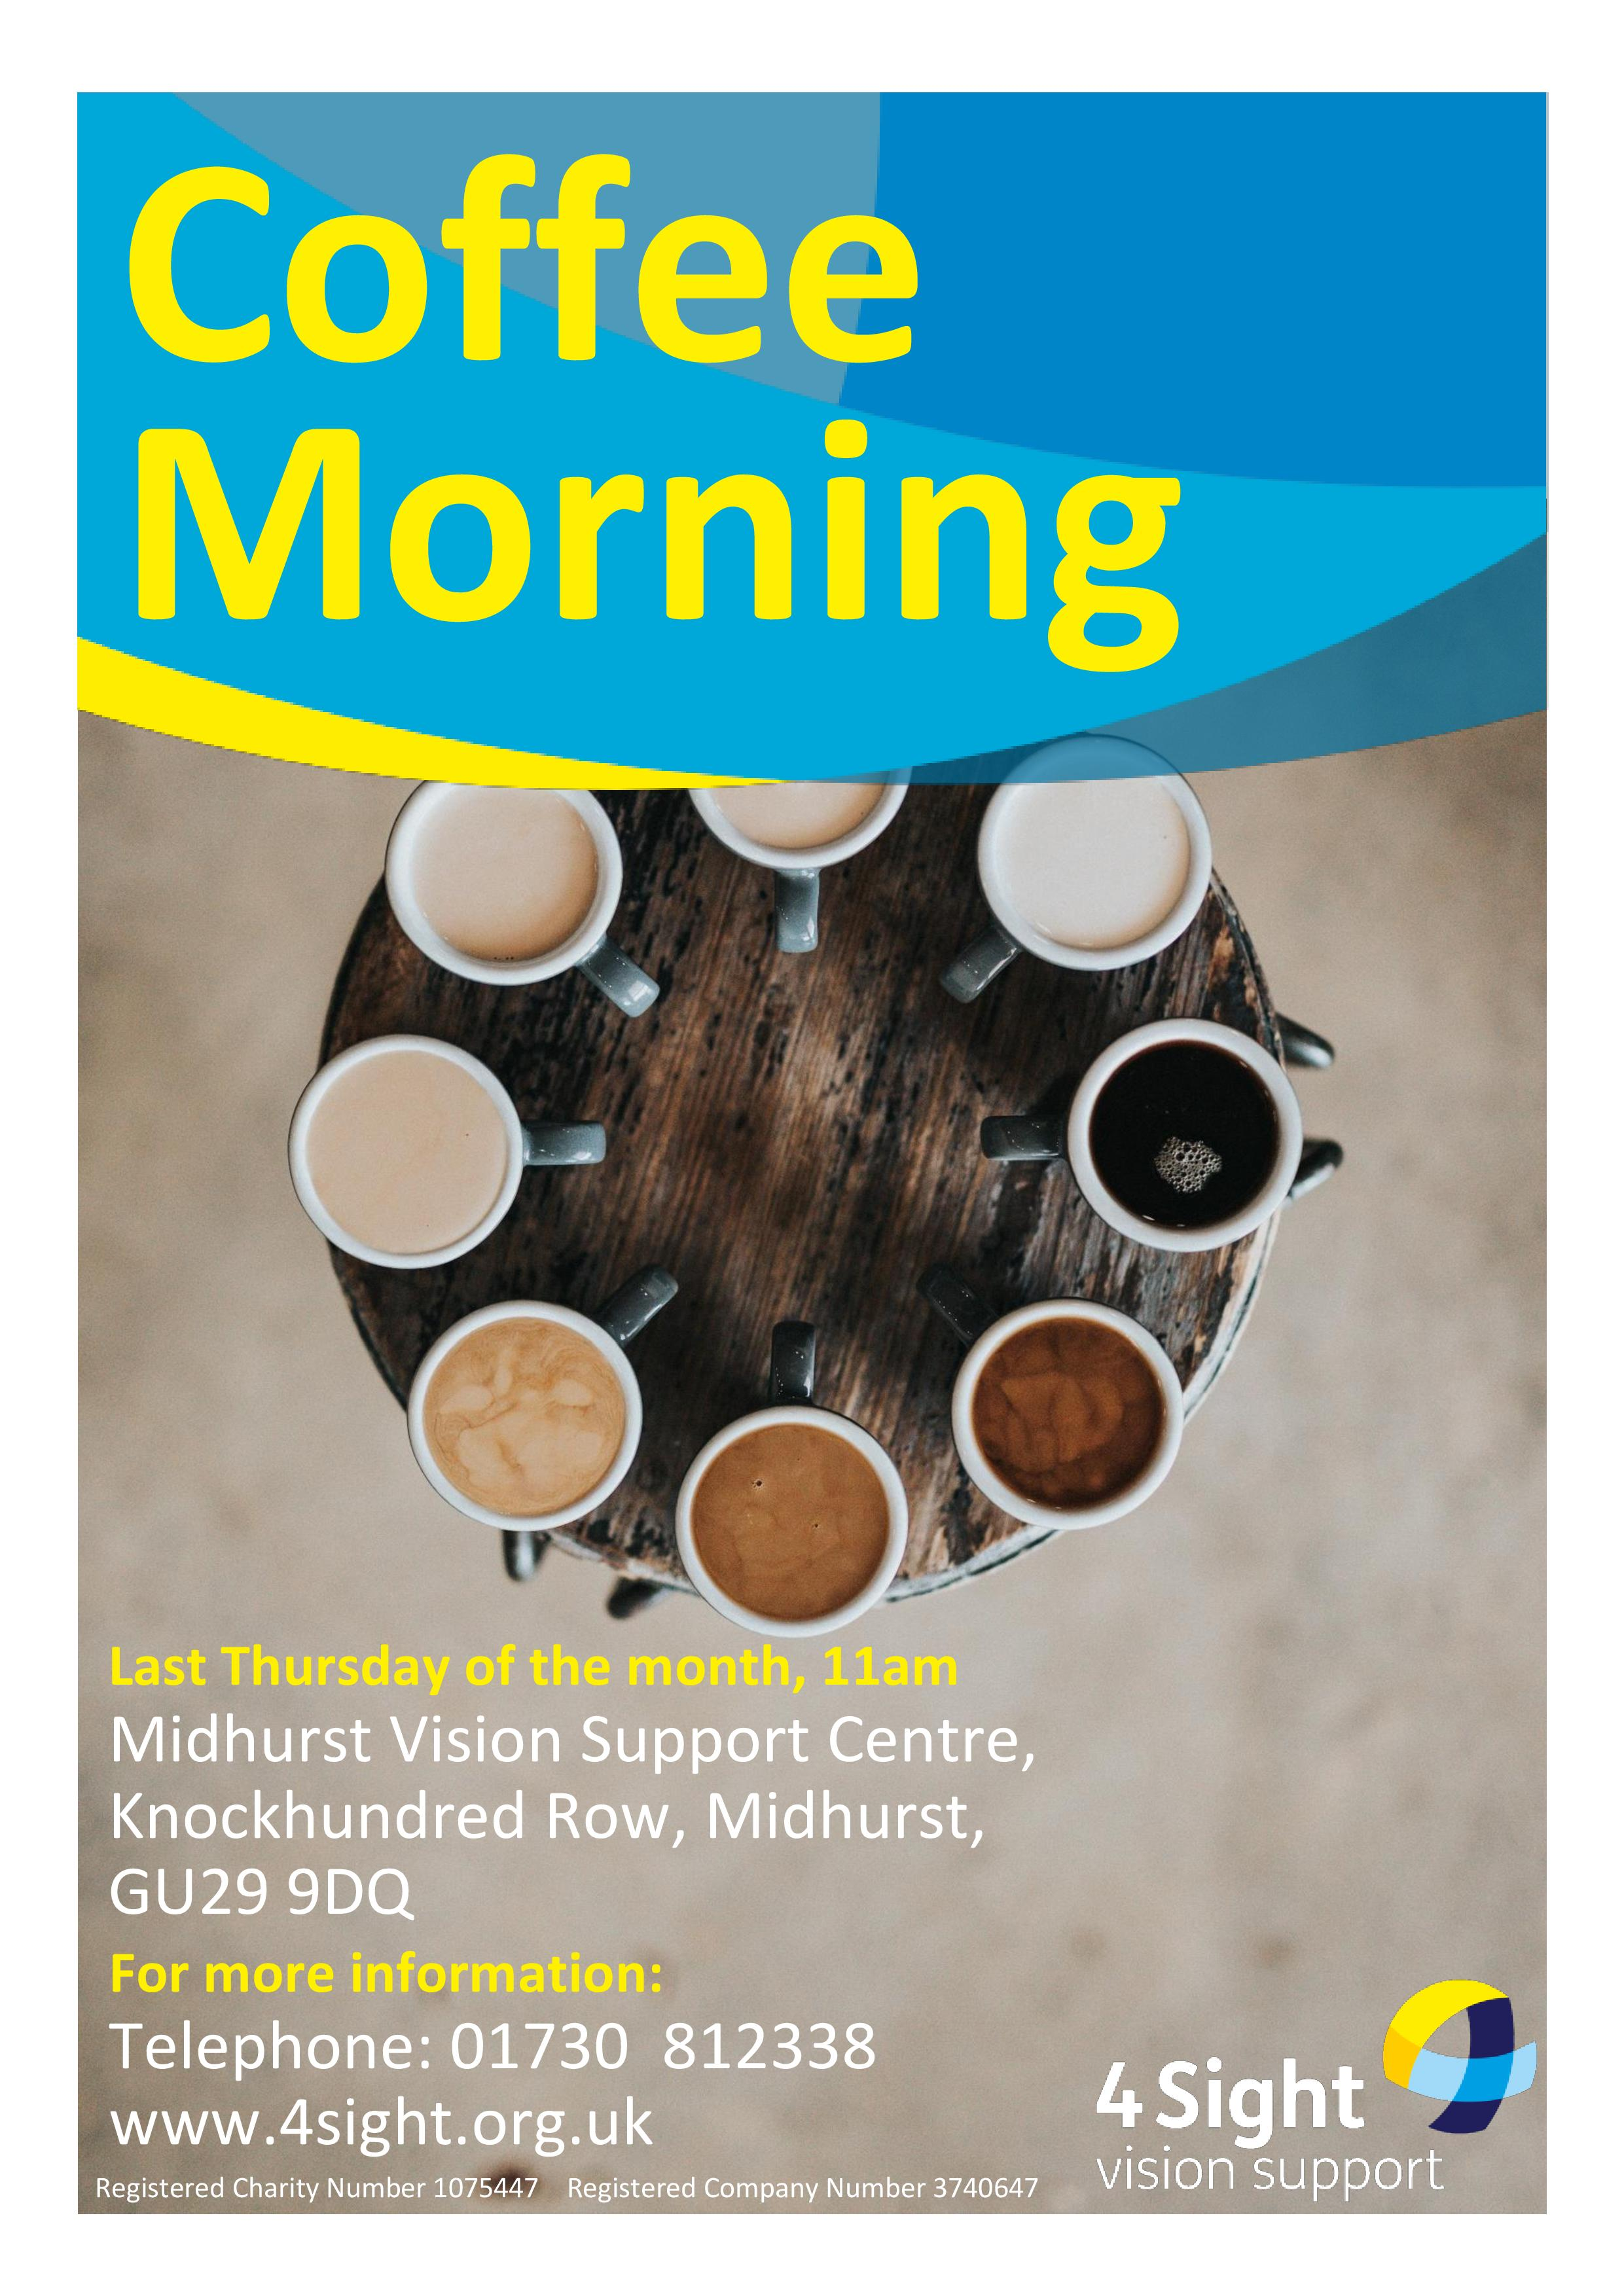 Coffee Morning - Midhurst